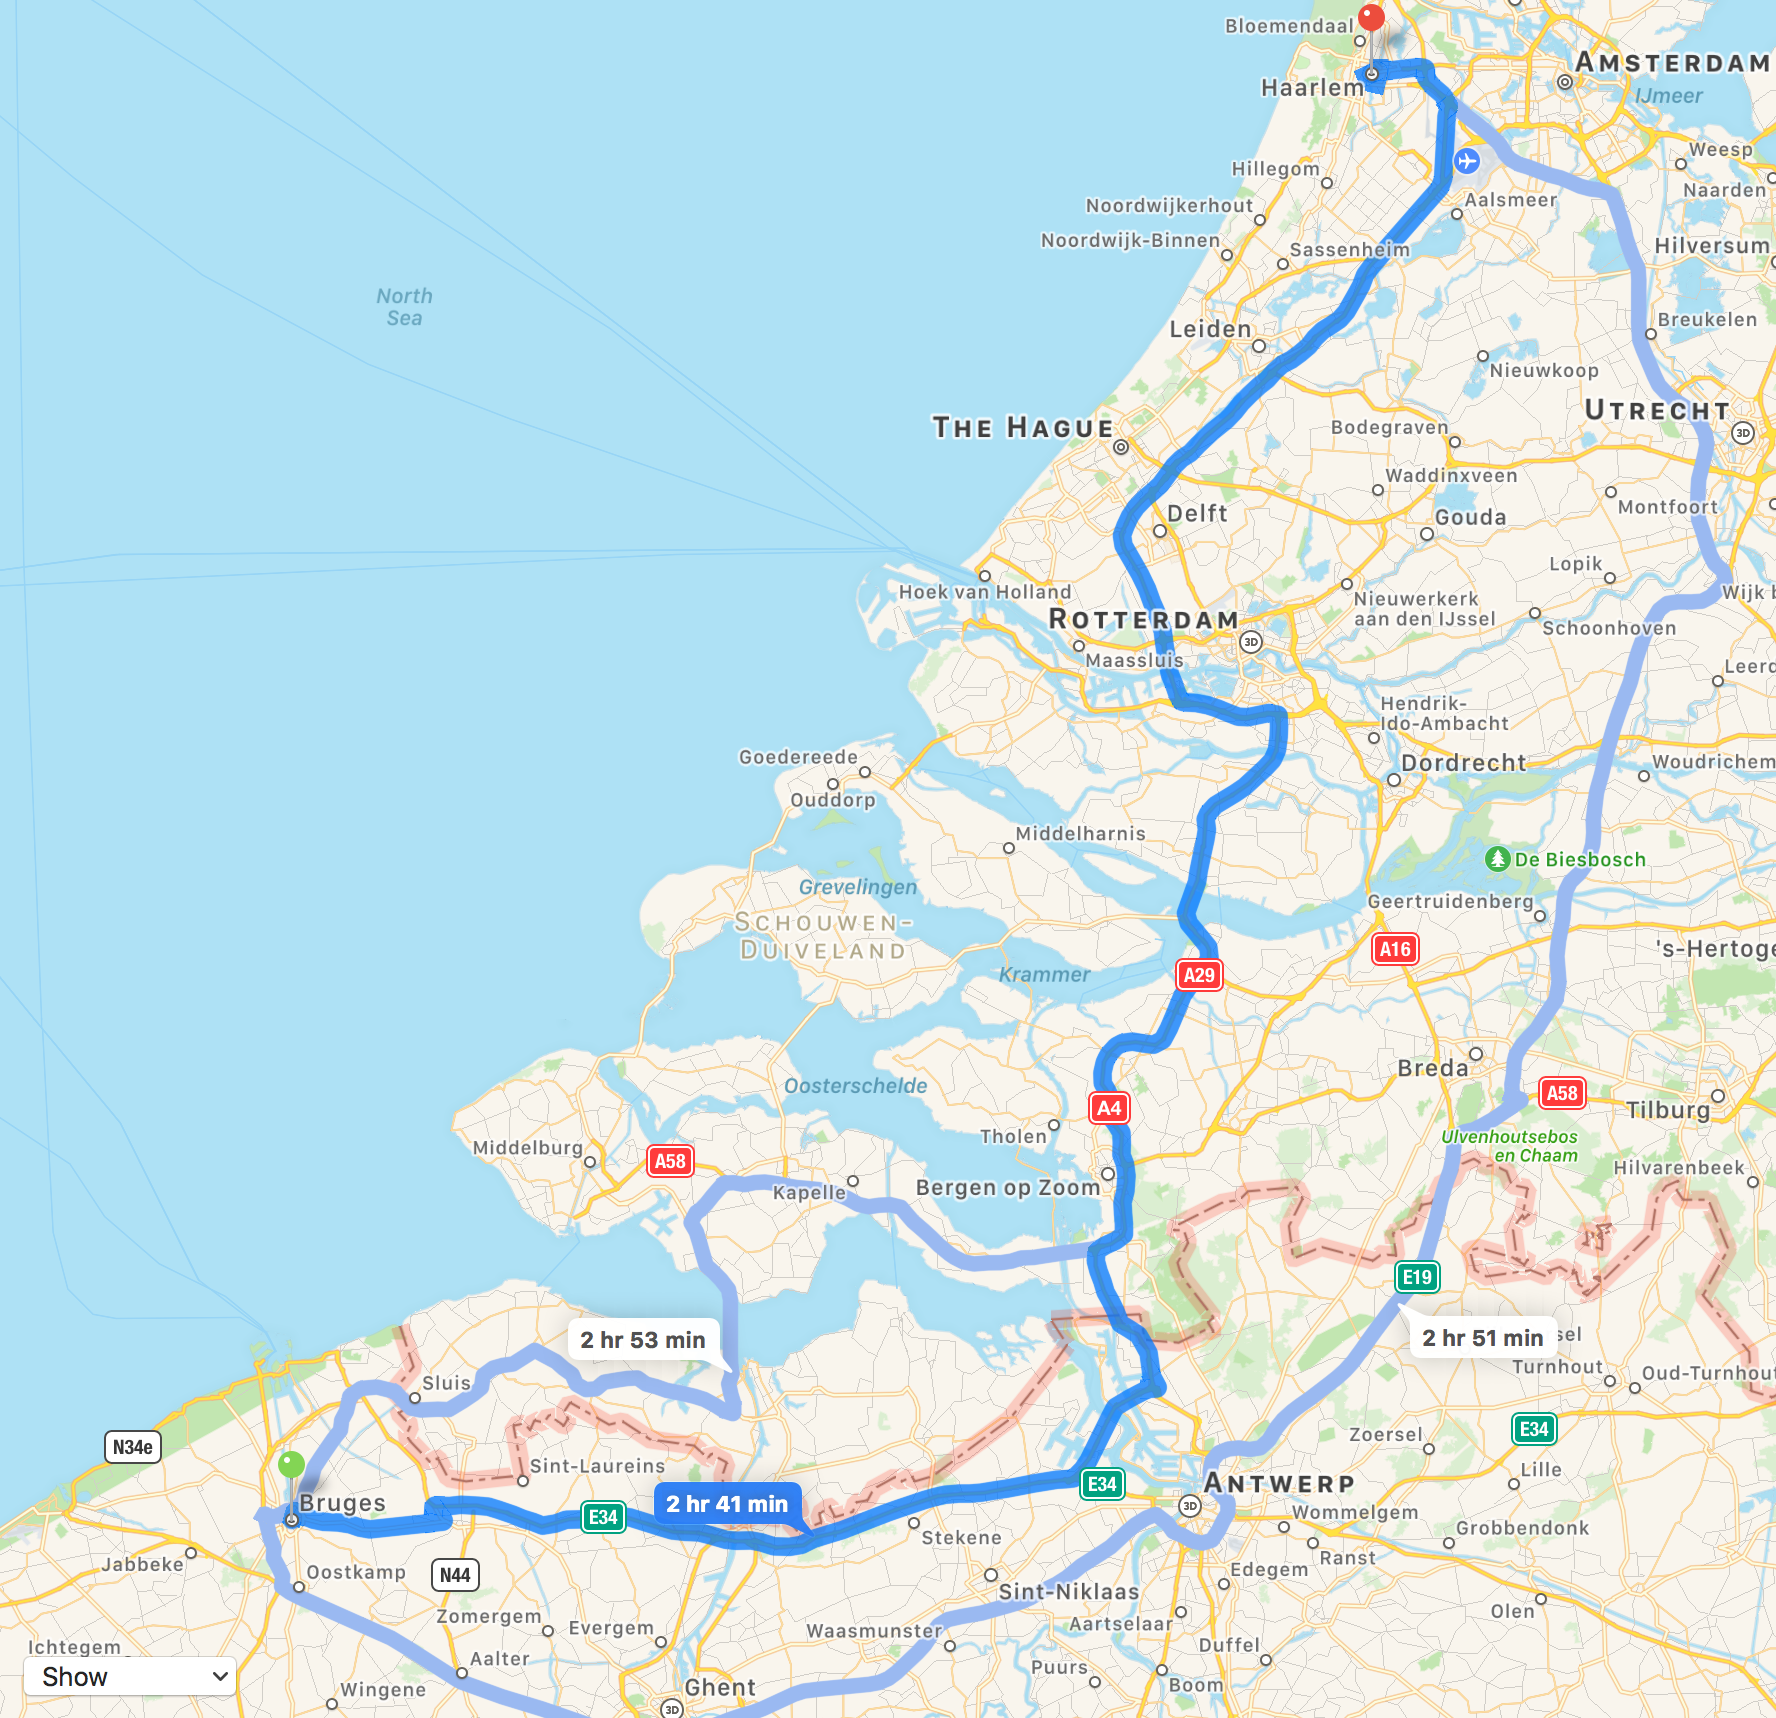 We Were Driven By Geo Former Statin Fence Sitter From Bruges To Haarlem A City Of 150000 Which Lies About 15 Km West Amsterdam And 5 East